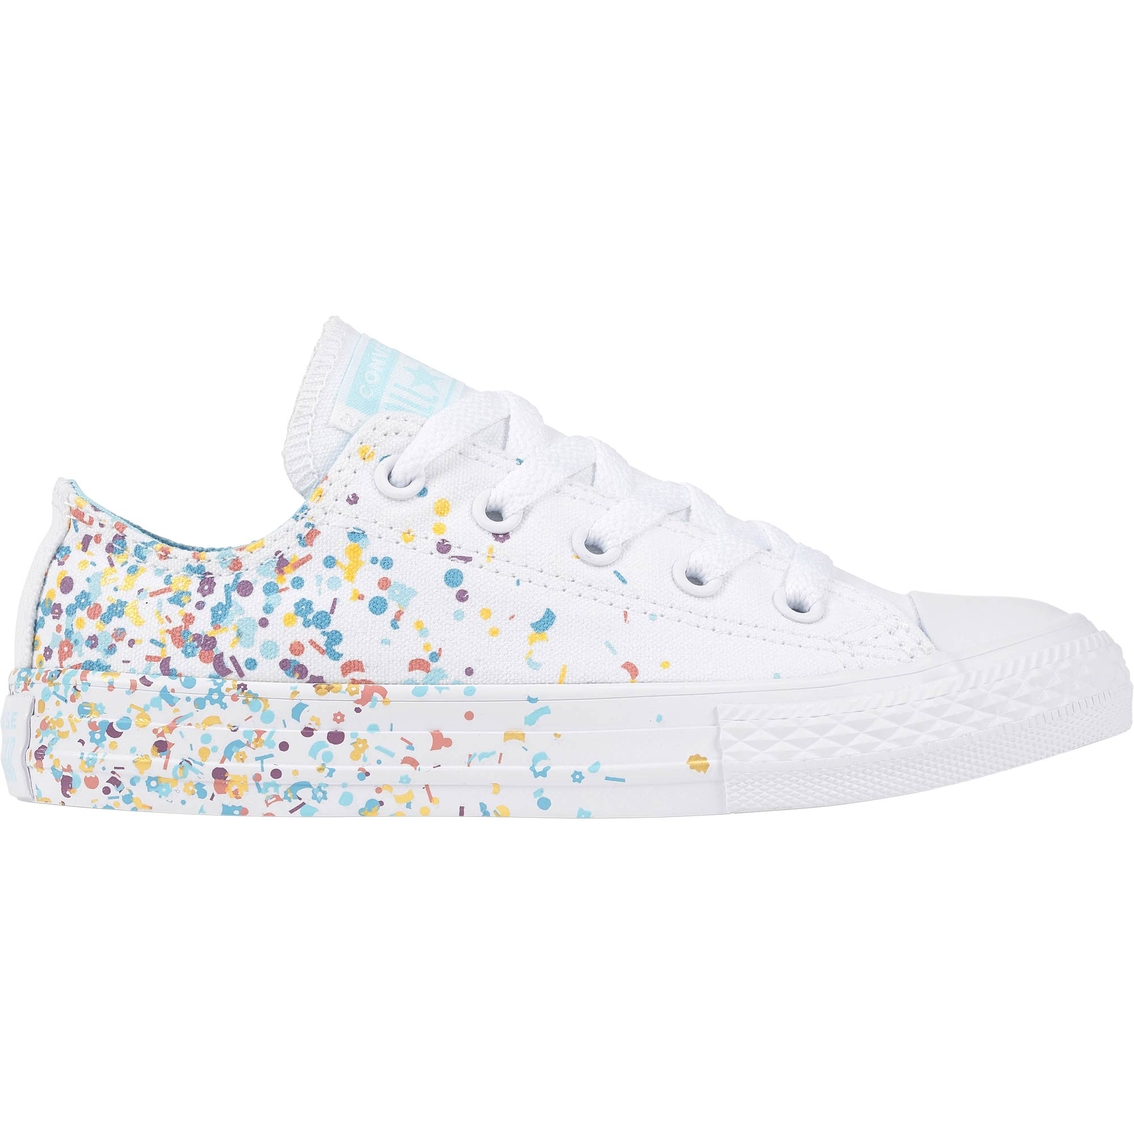 9d1ae26d959 Converse Girls Chuck Taylor All Star Ox Sneakers | Casual | Shoes ...